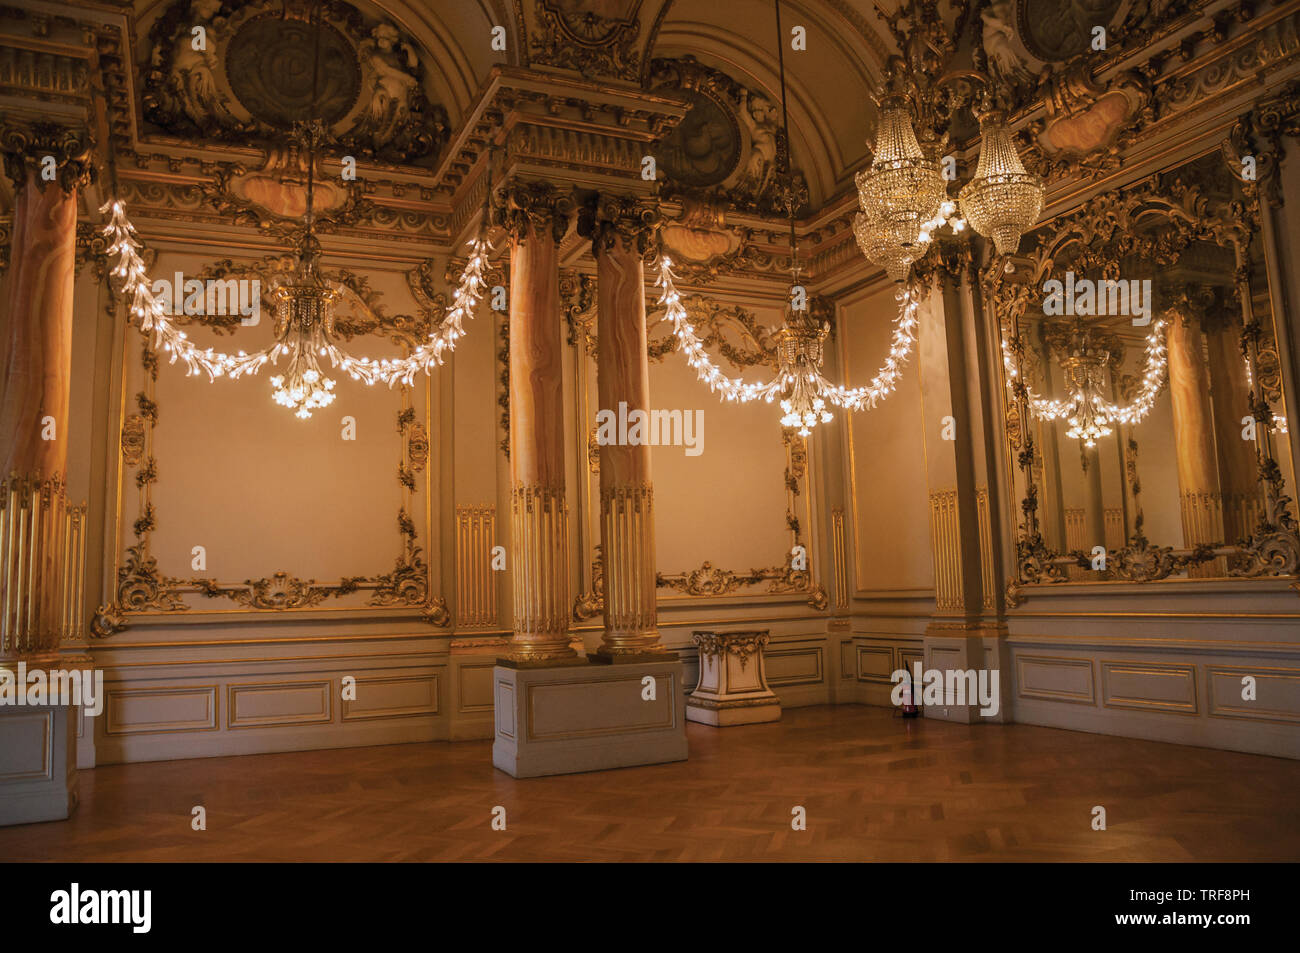 Luxurious lounge decoration at the Quai d'Orsay Museum in Paris. One of the most impressive world's cultural center in France. Stock Photo